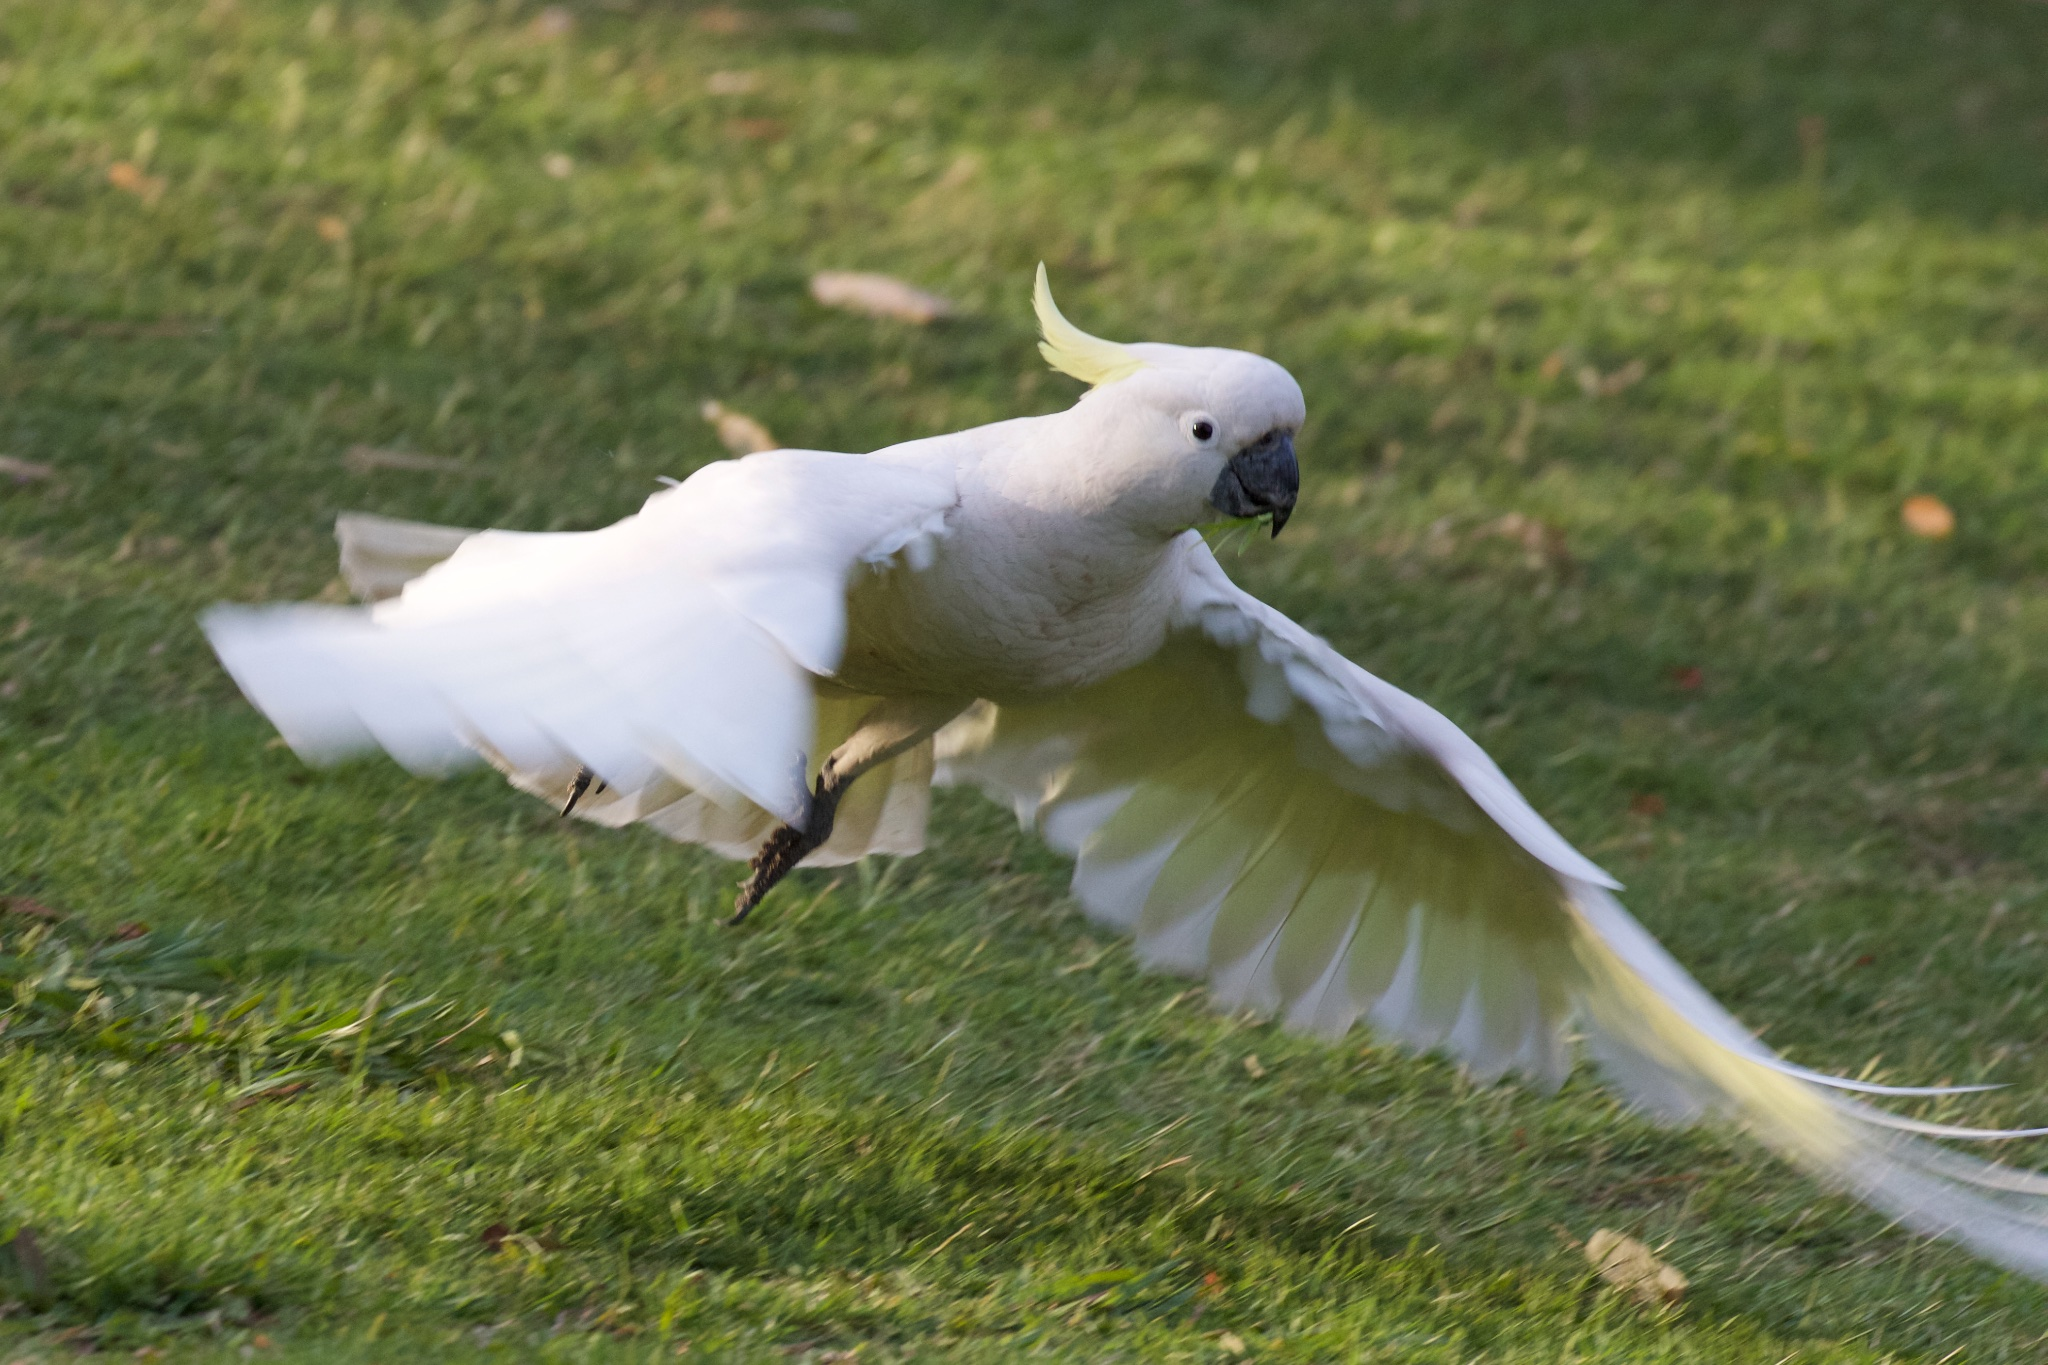 Cockatoo taking off